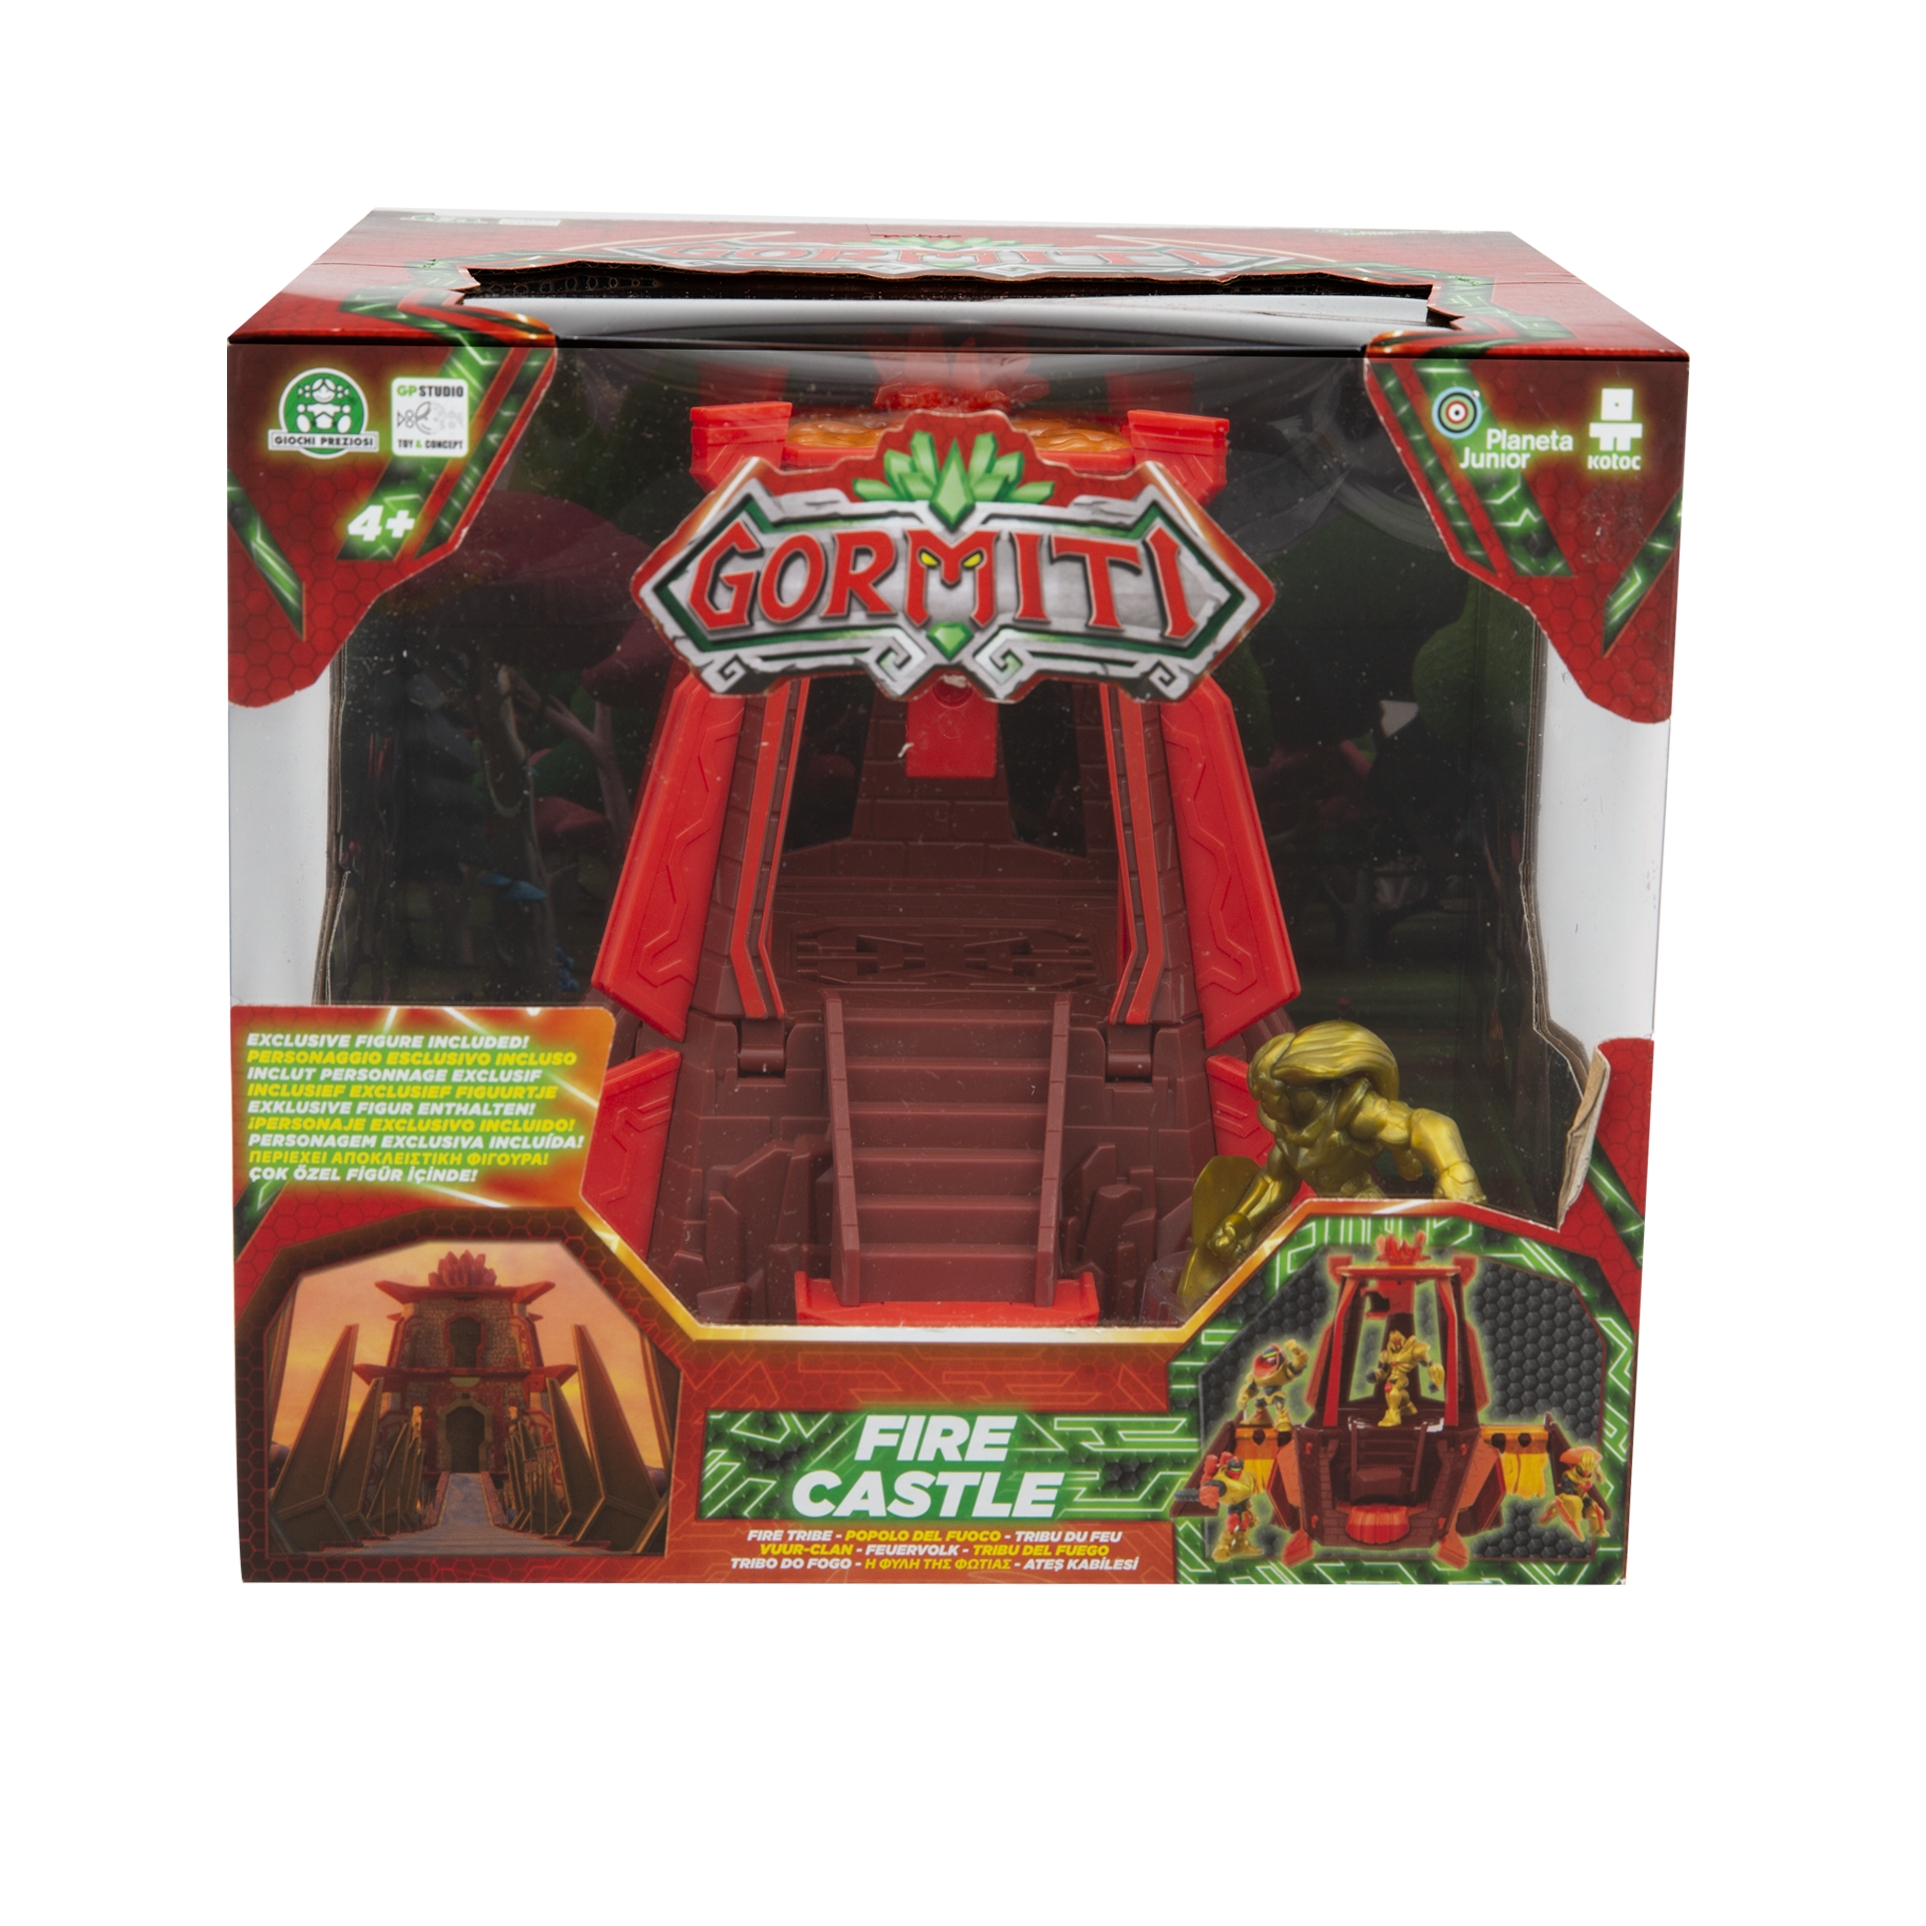 9f978ed91254ba970fbe04e4e2f4a8d8fcfd1dd7_GRE07000_GORMITI_S2_ACTION_PLAYSET_fire_castle_pack